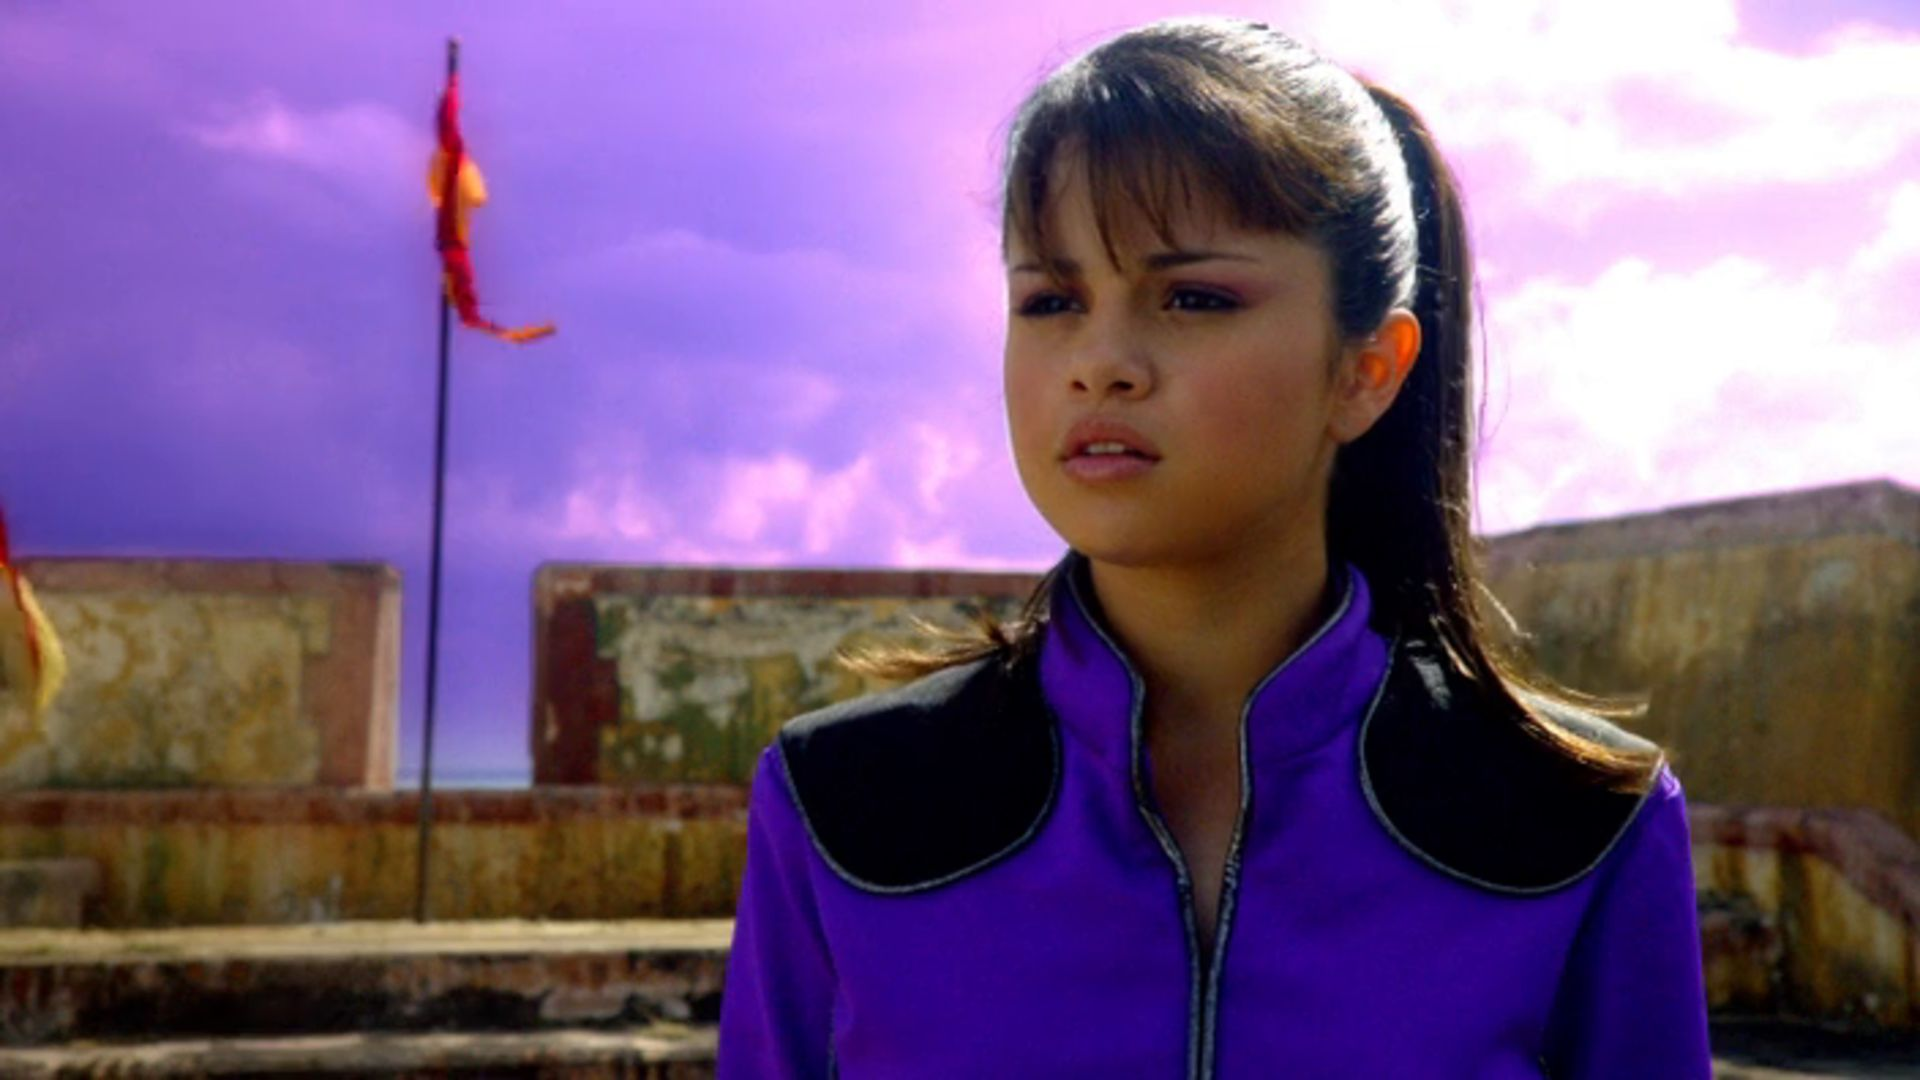 watch wizards of waverly place the movie 2009 online free